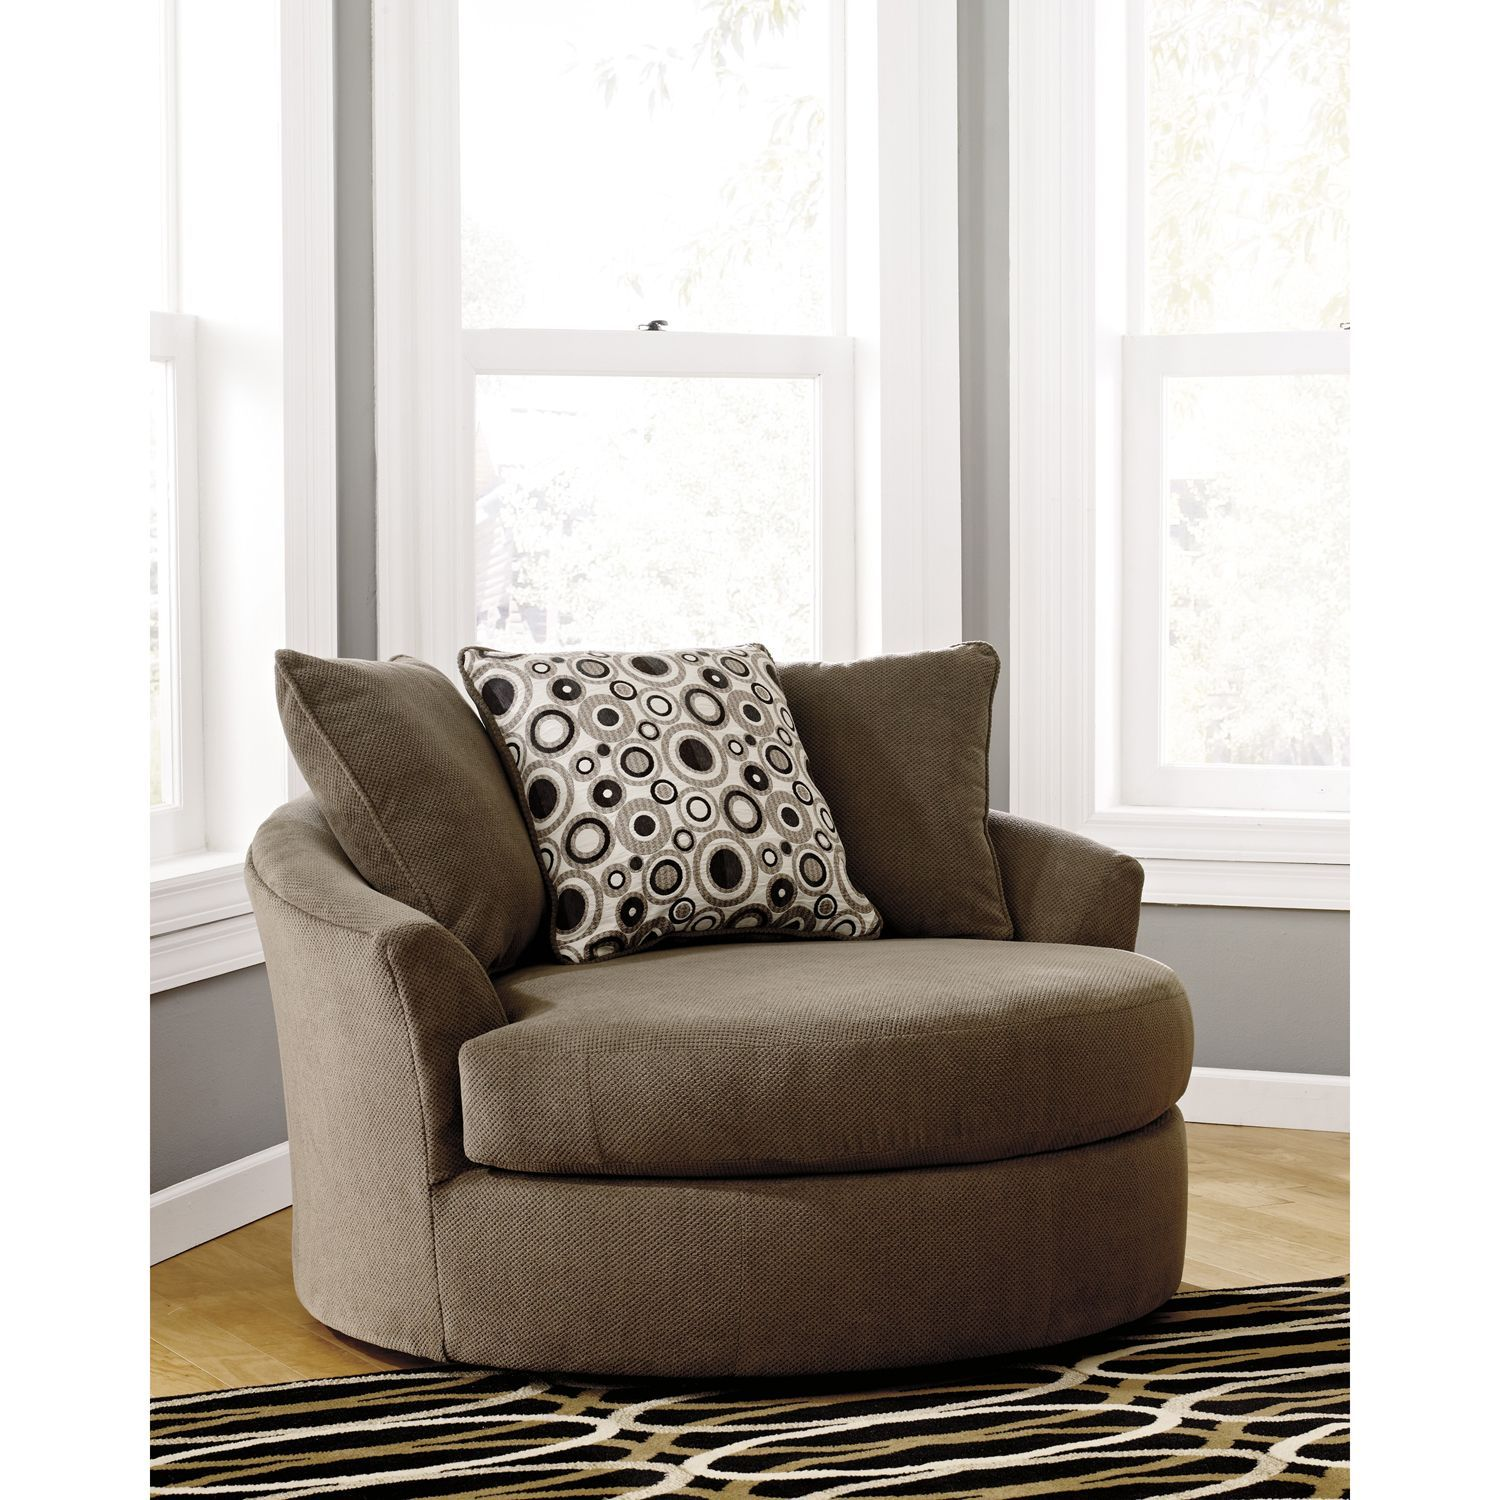 Roenik Oversized Swivel Accent Chair Sam S Club I Need